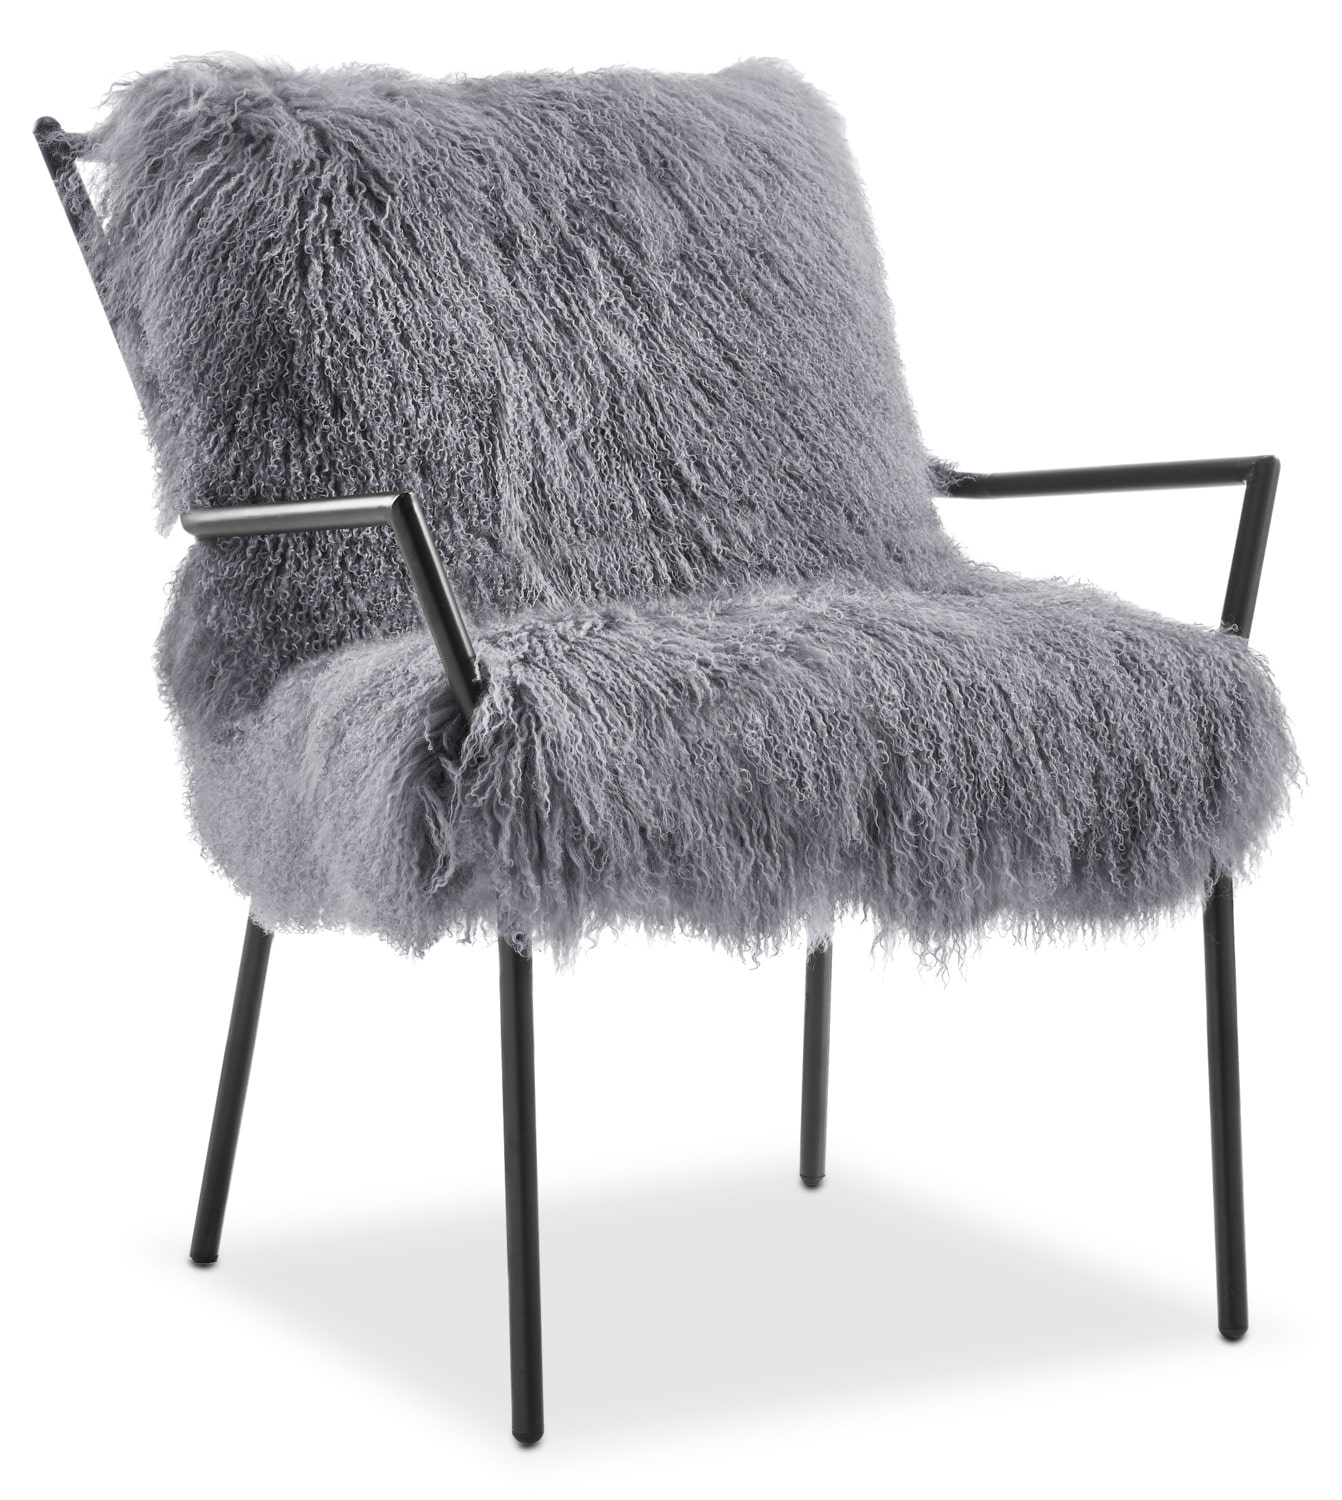 Lara Accent Chair - Black and Gray